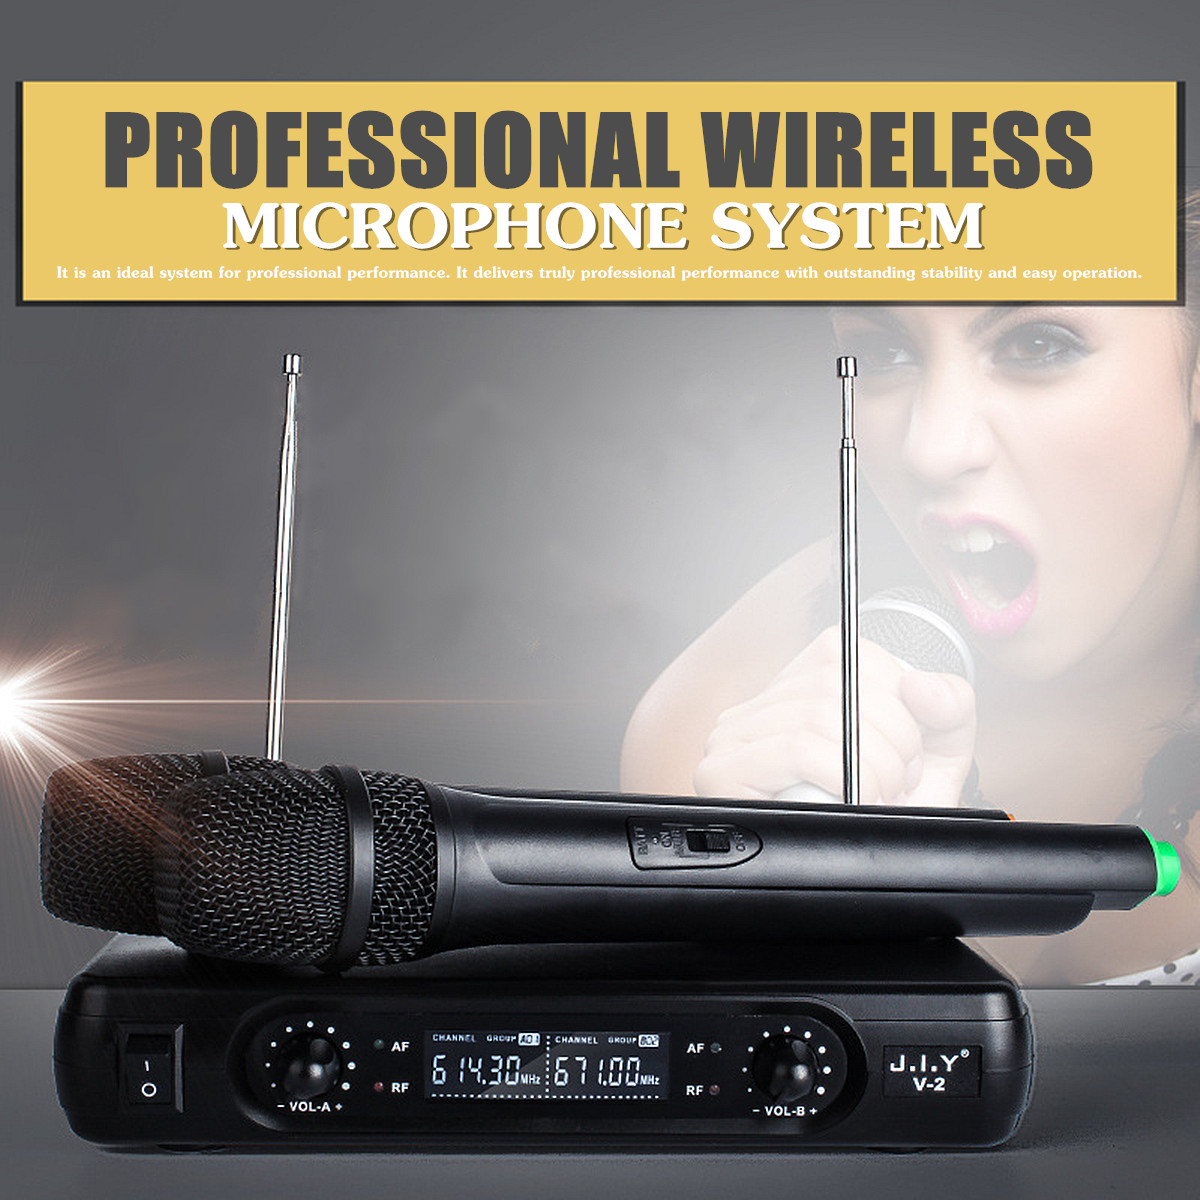 LEORY Wireless Microphone System 2 x Microphones High-fidelity Reproduce 100M True Voice Voice Compression Large Receiving RangeLEORY Wireless Microphone System 2 x Microphones High-fidelity Reproduce 100M True Voice Voice Compression Large Receiving Range